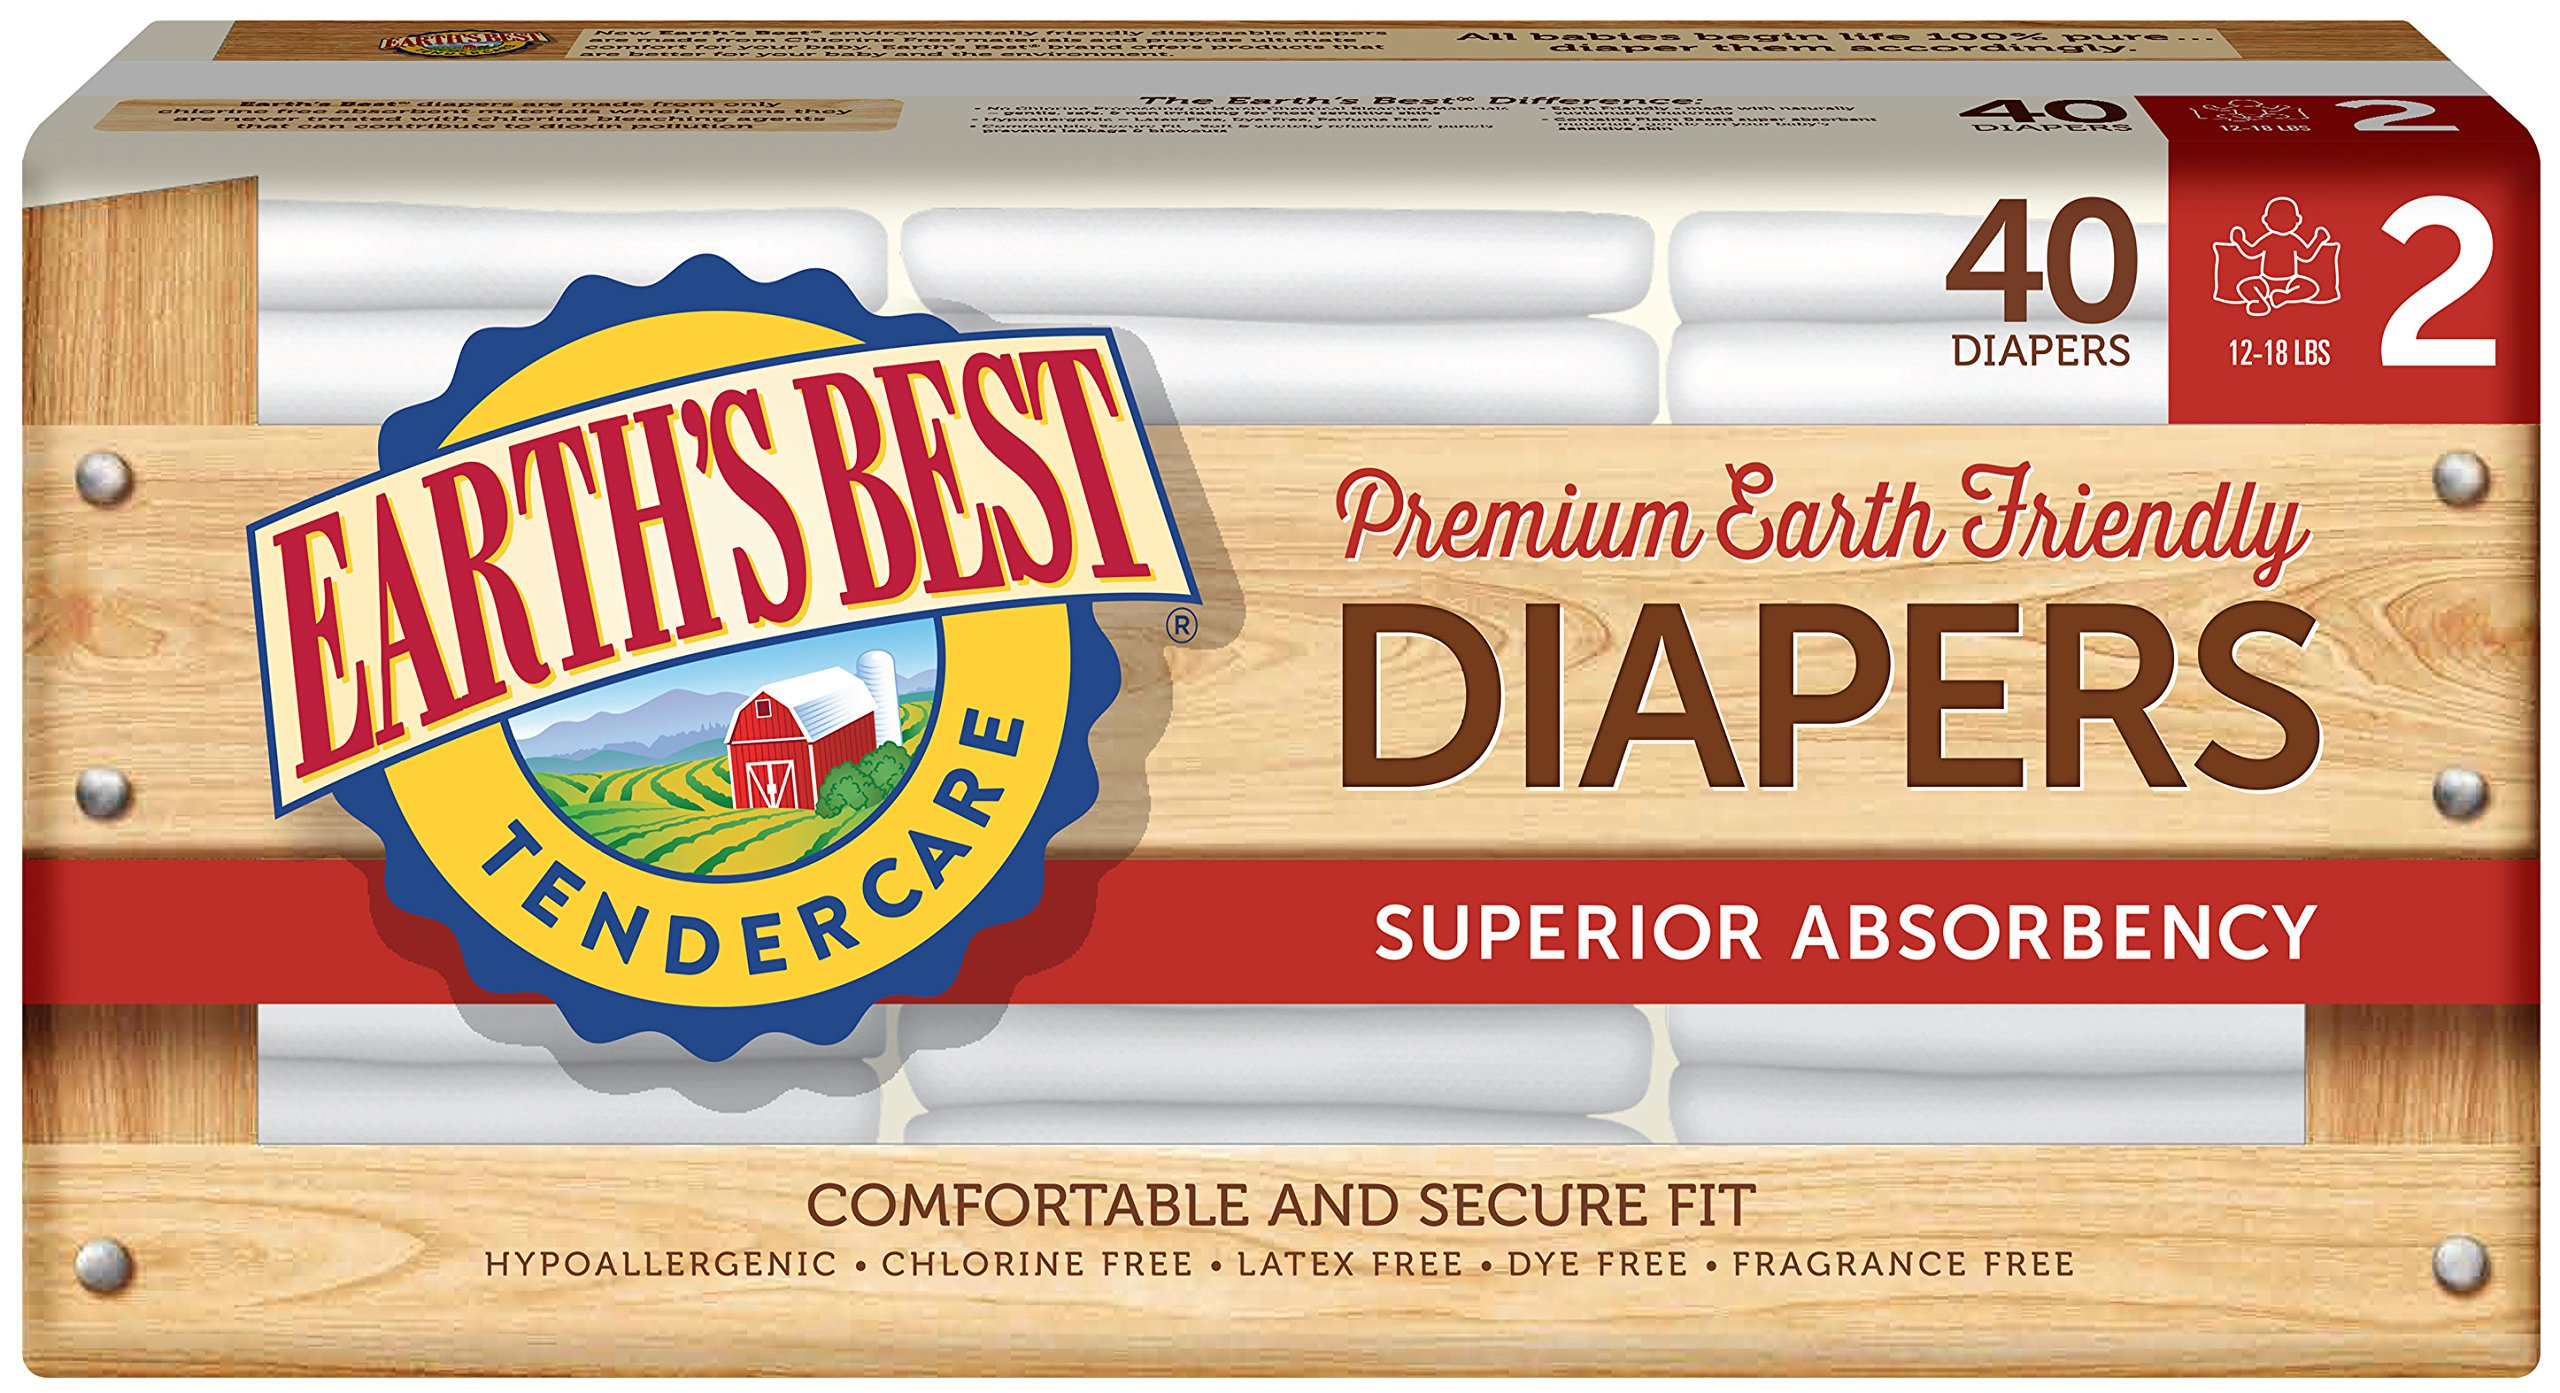 Earth's Best TenderCare Chlorine-Free Disposable Baby Diapers, (12-18 lbs),Size 2 (40 Count)